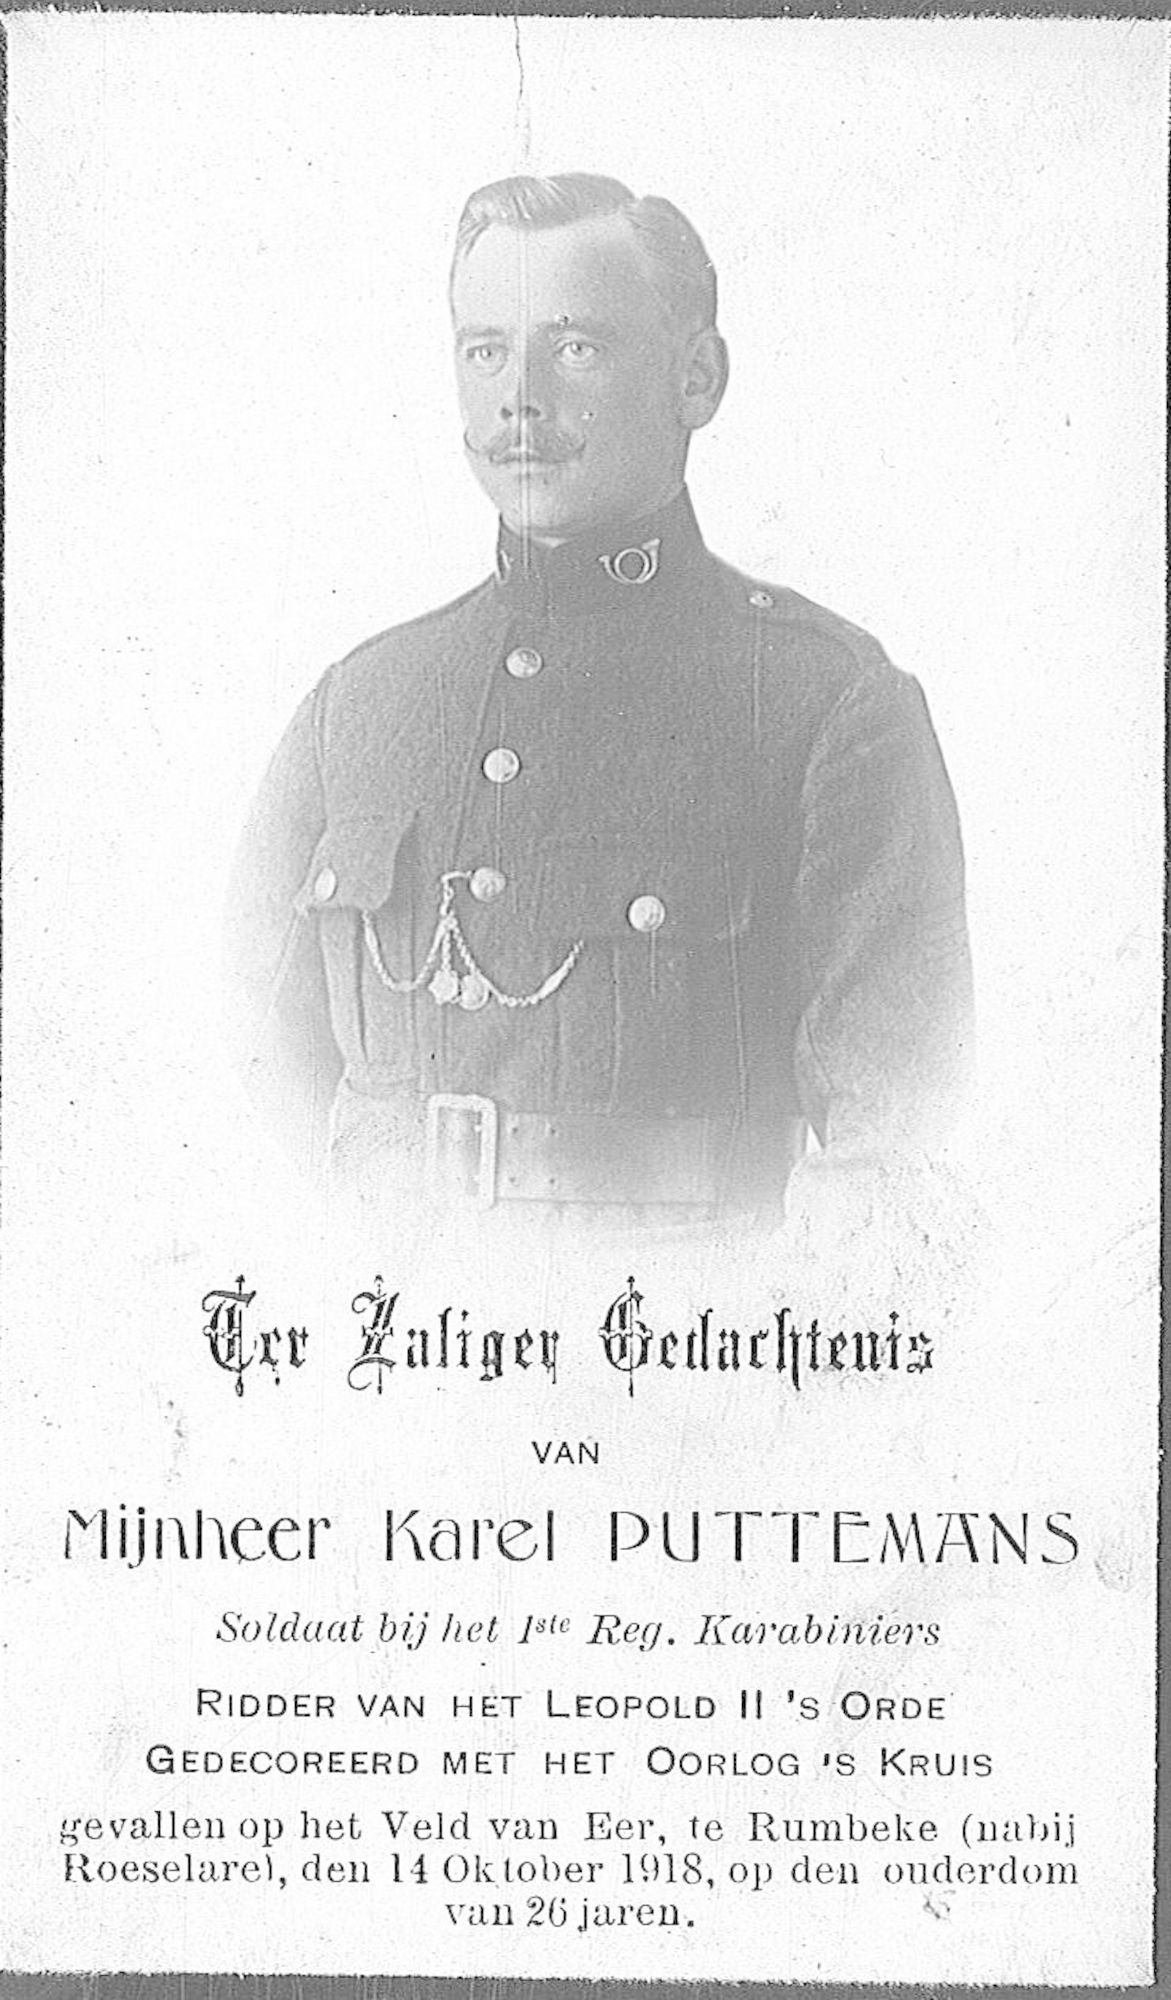 Karel Puttemans